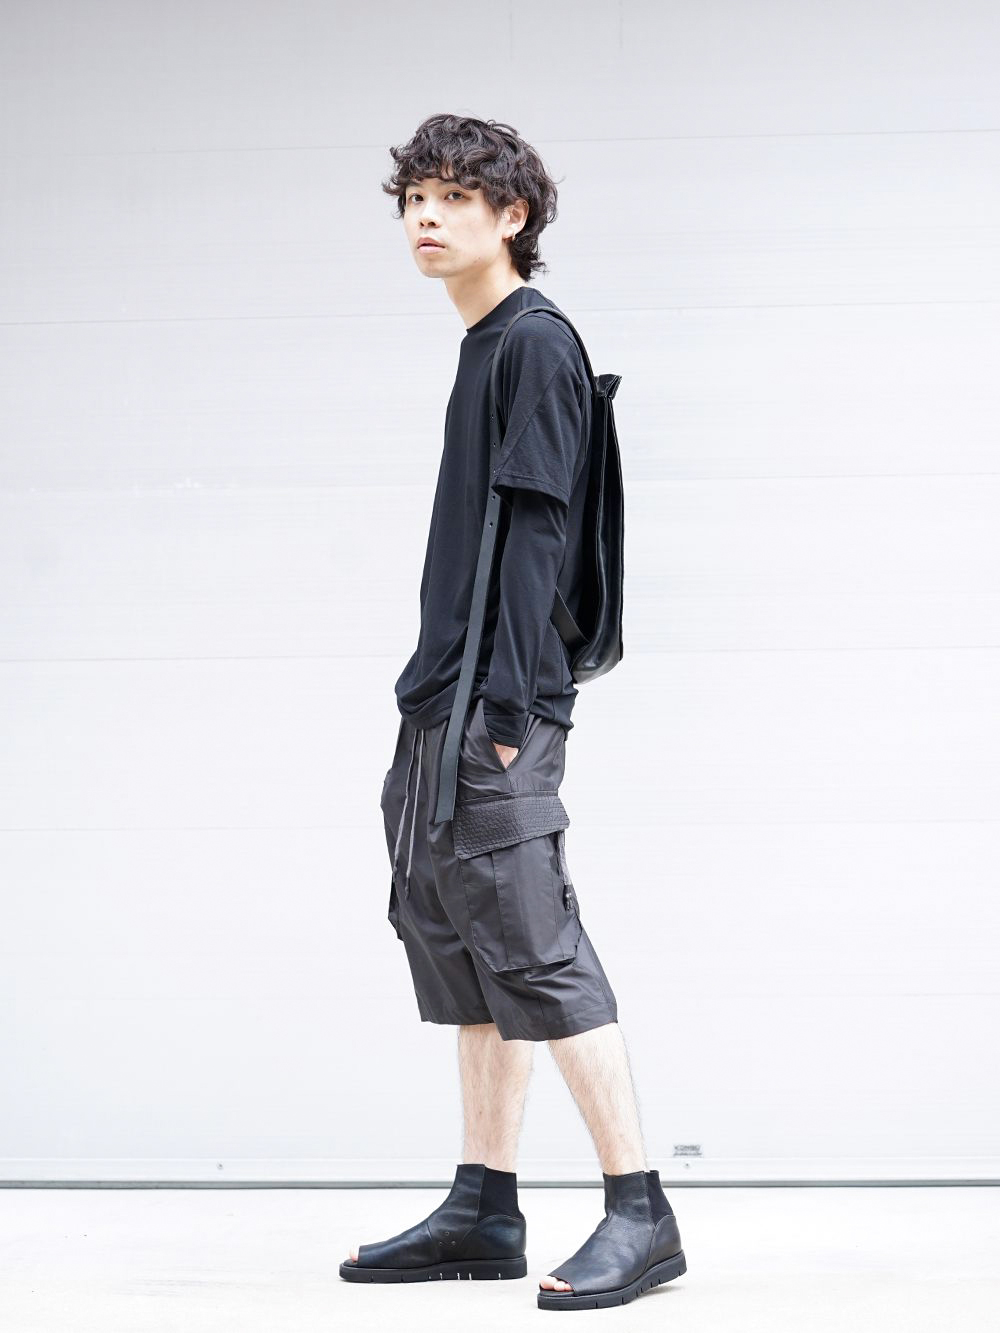 DEVOA 19SS Cutsew & Short Pants Recommended Style - 1-003